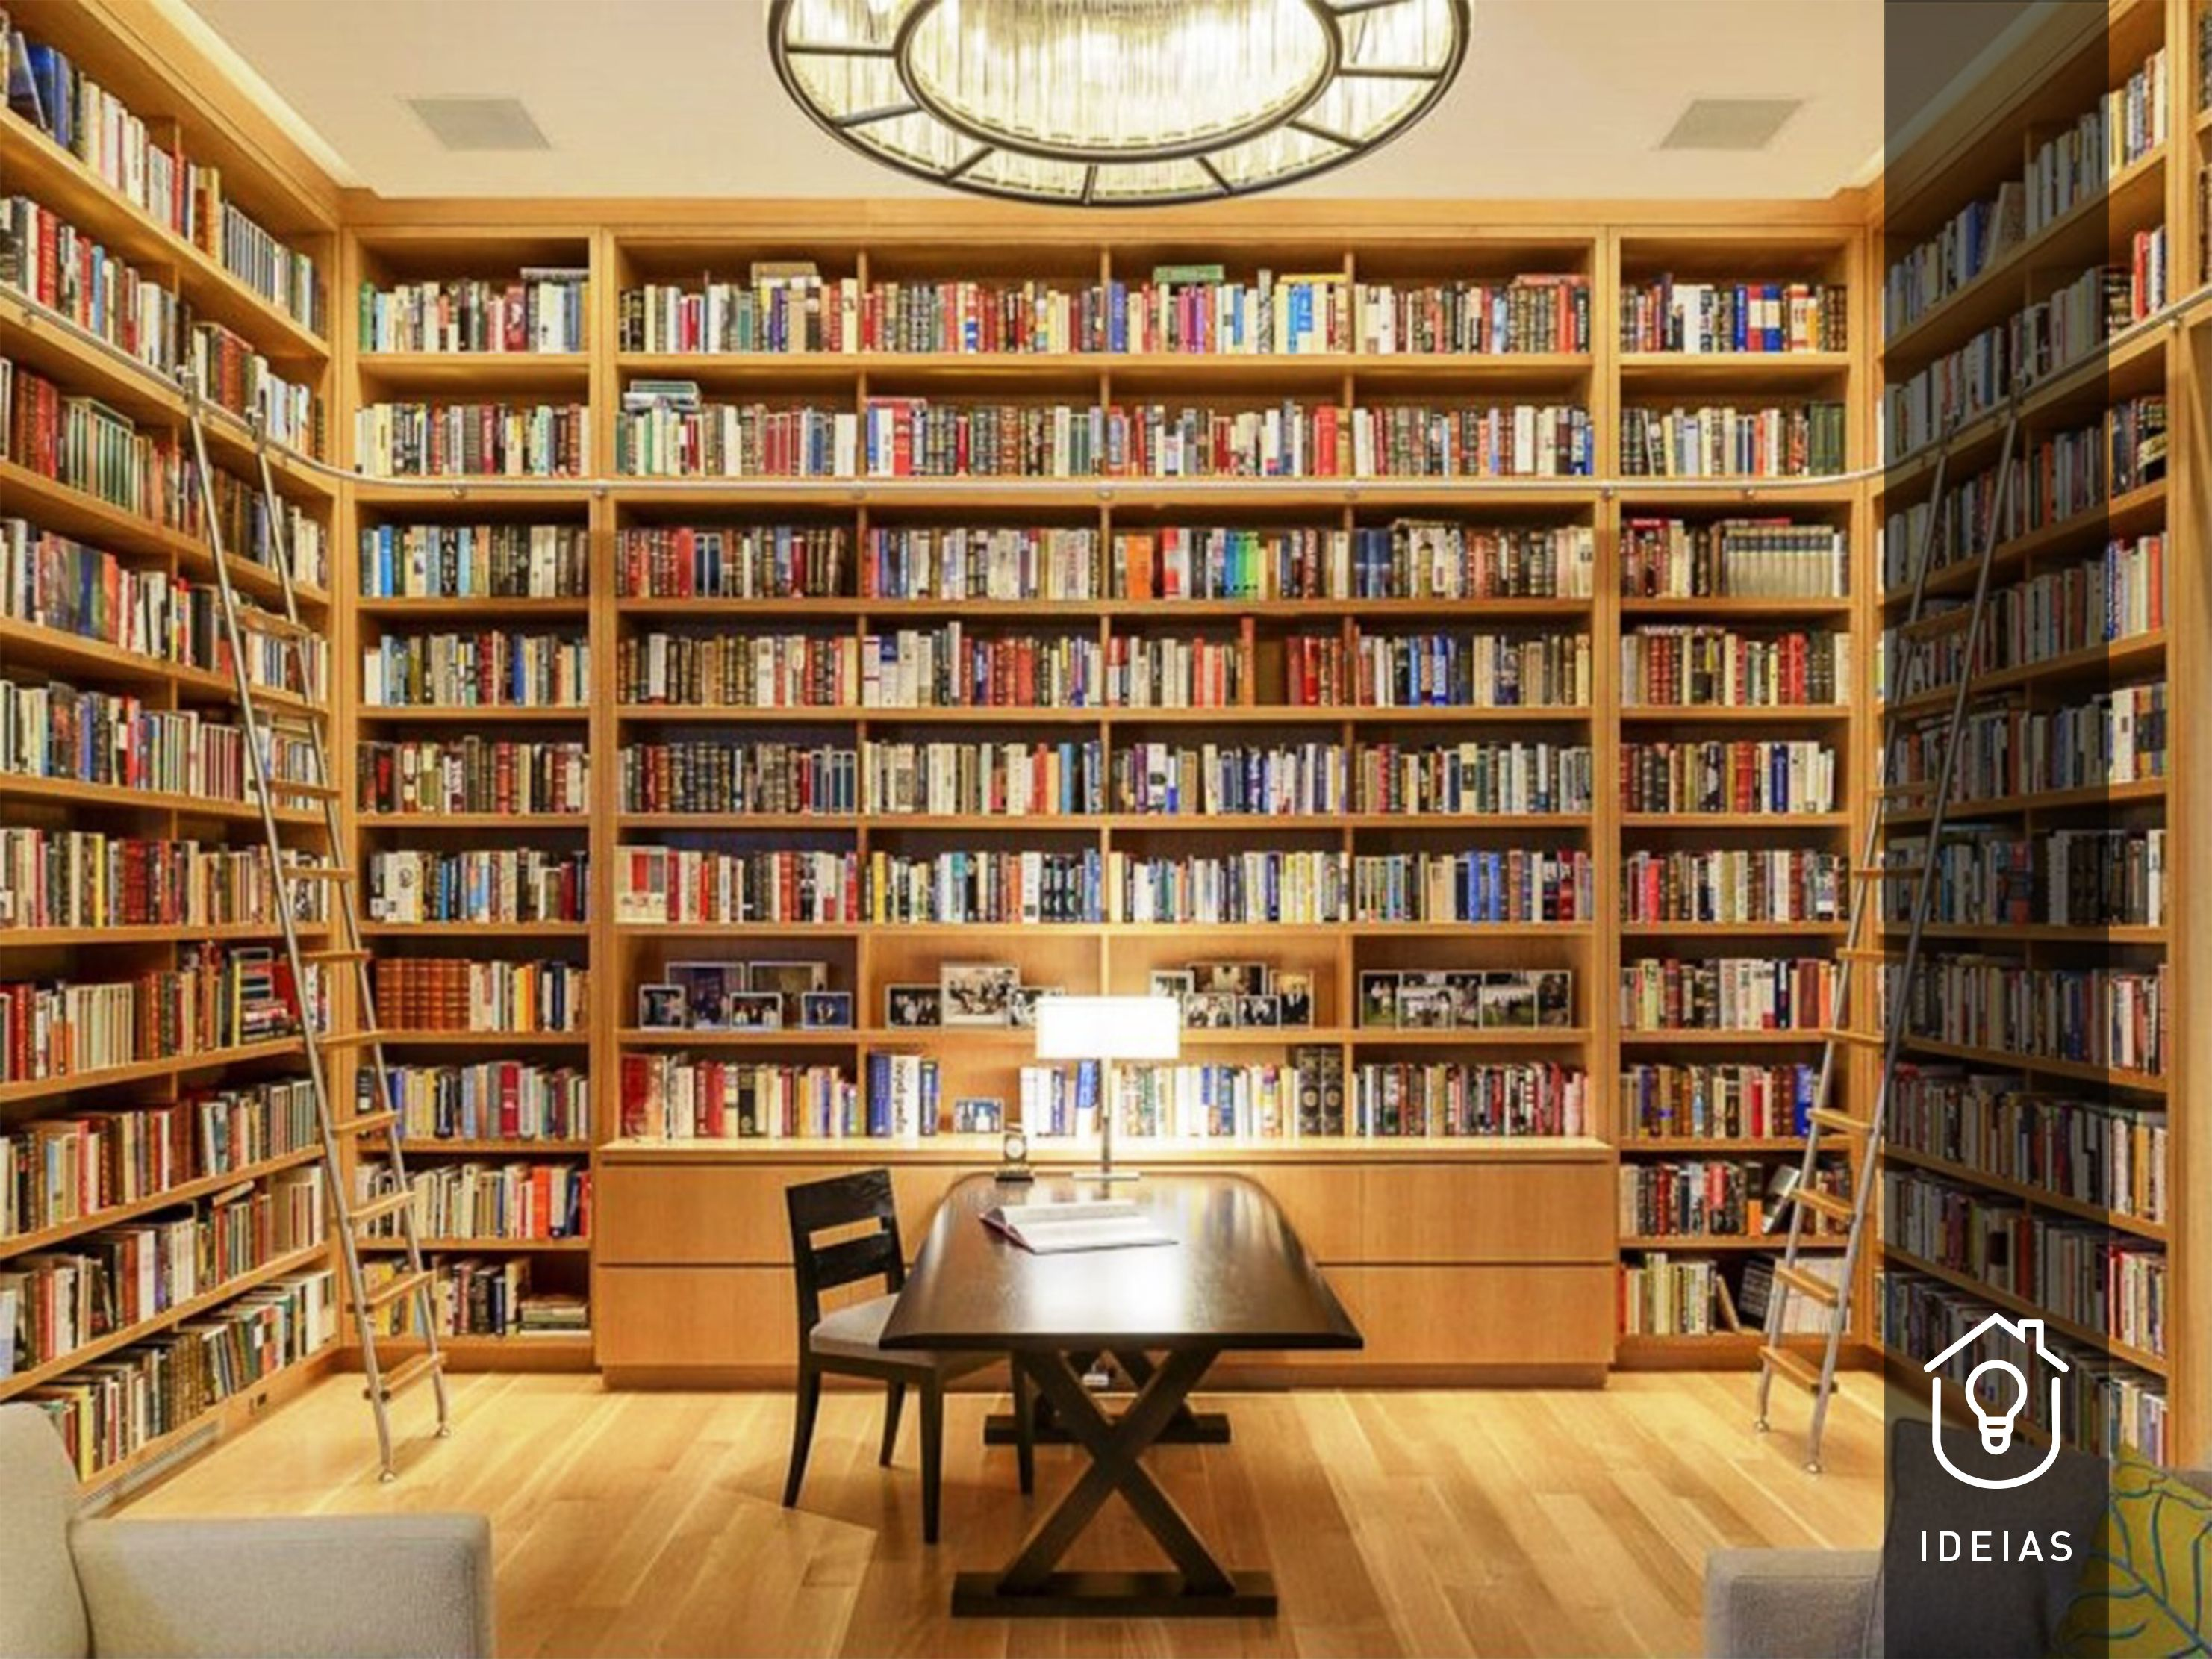 Charmant Gothic Home Office Library Design Ideas Home Library Office Design Ideas